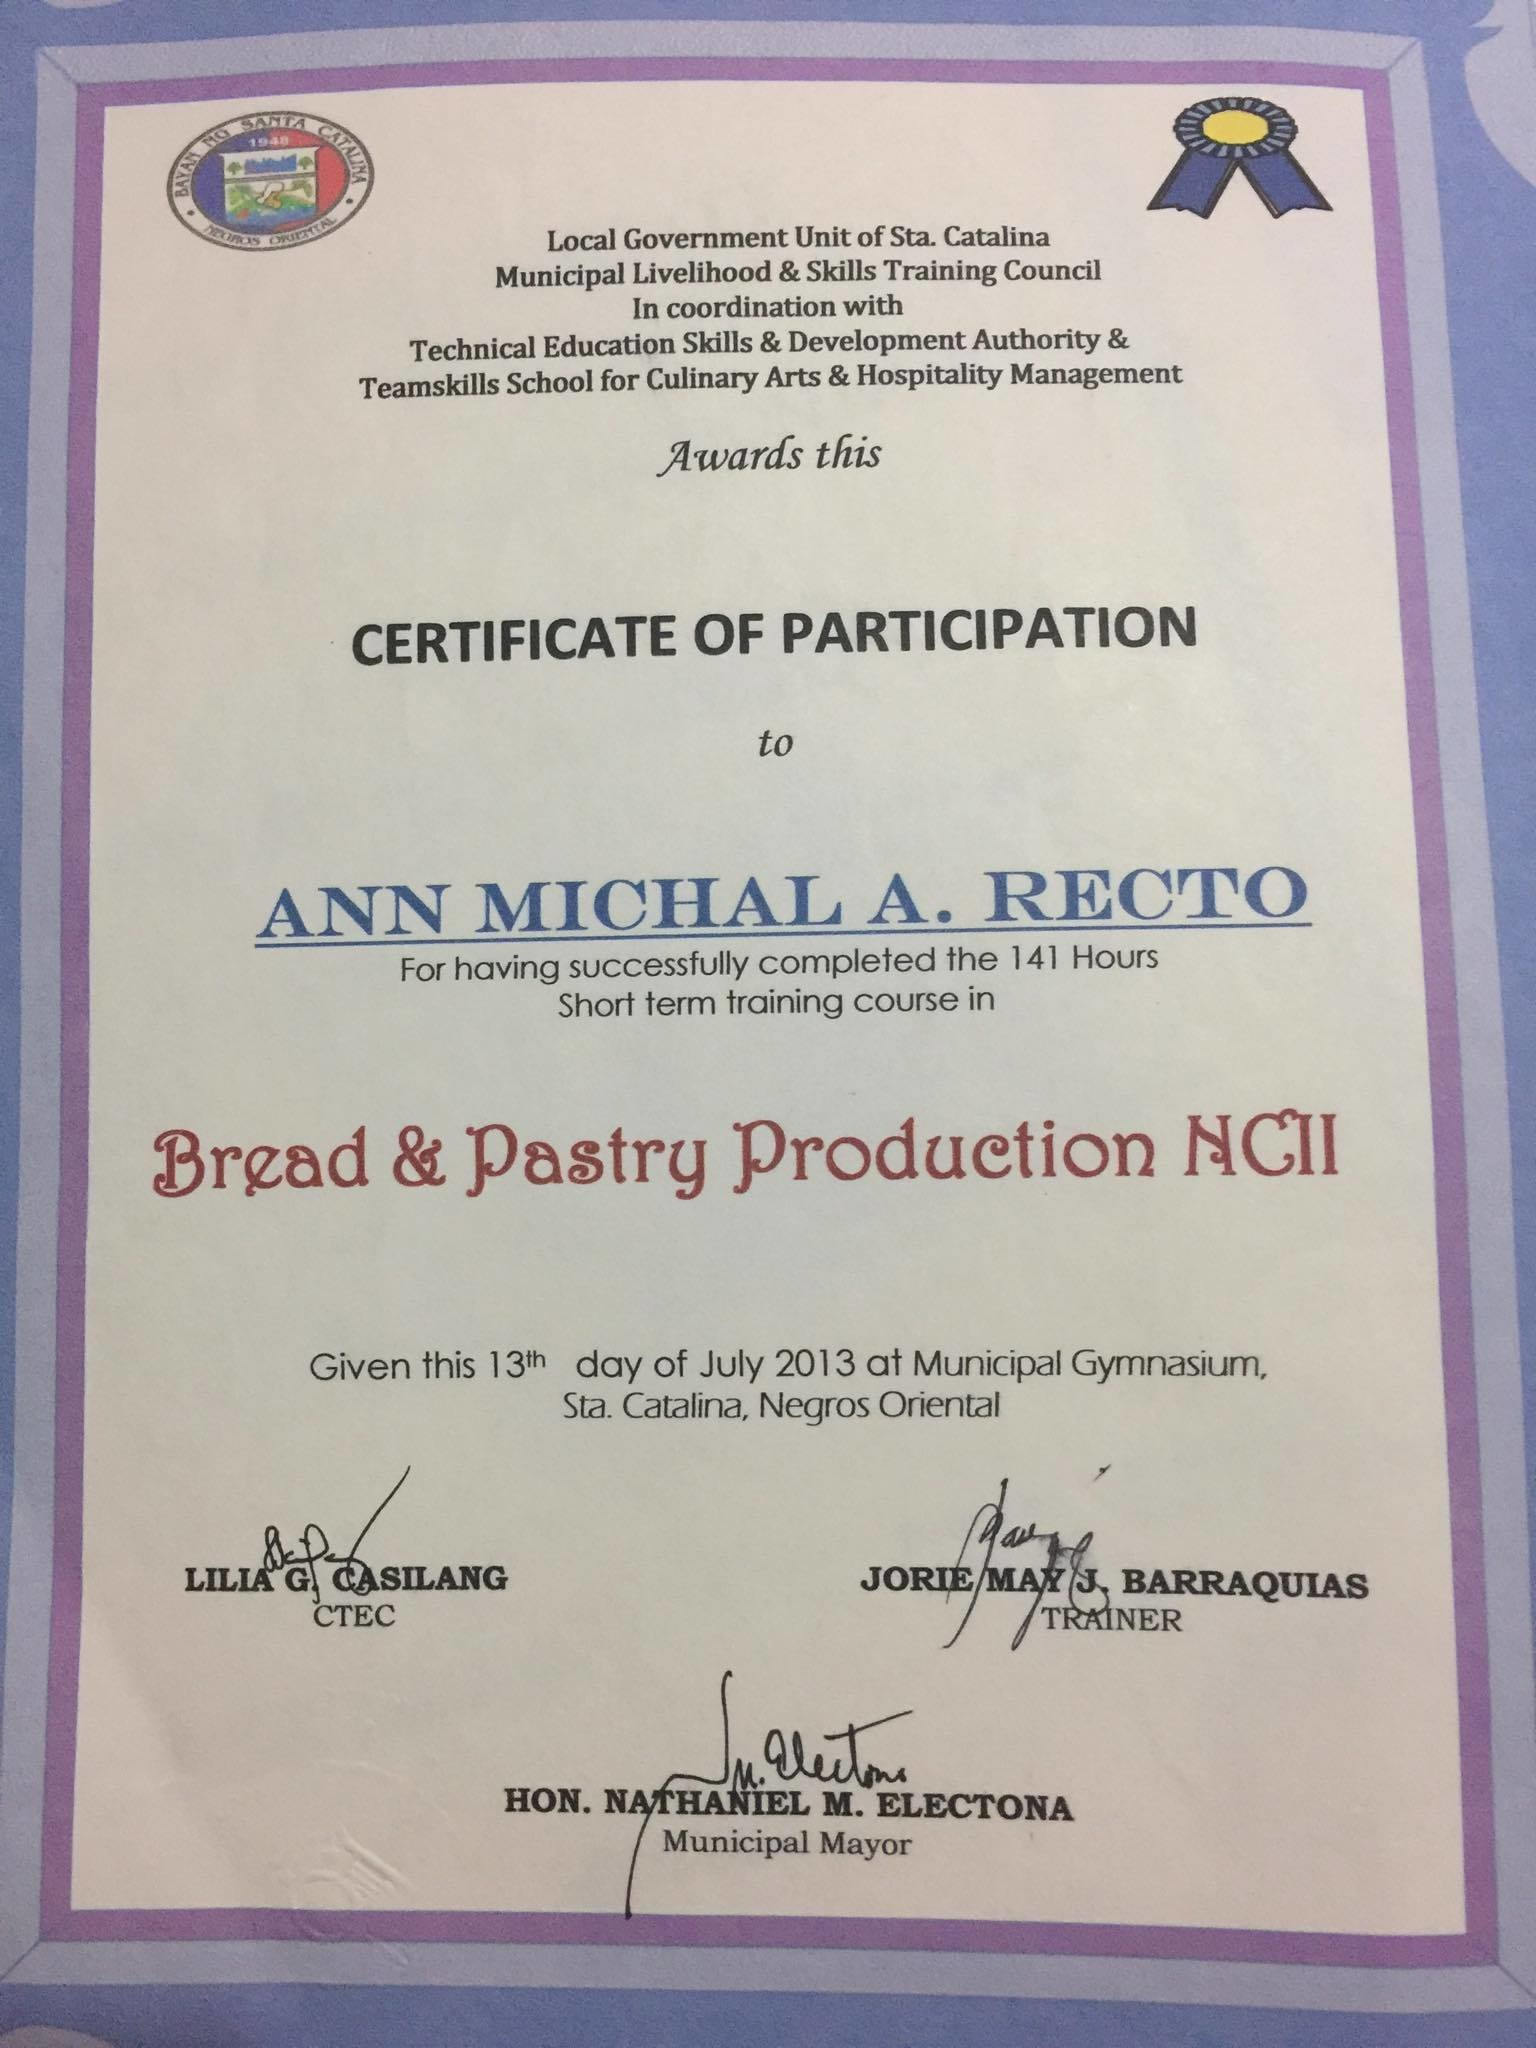 Ann michal recto bayt training institute teamskills school for culinary arts hospitality management 1betcityfo Images